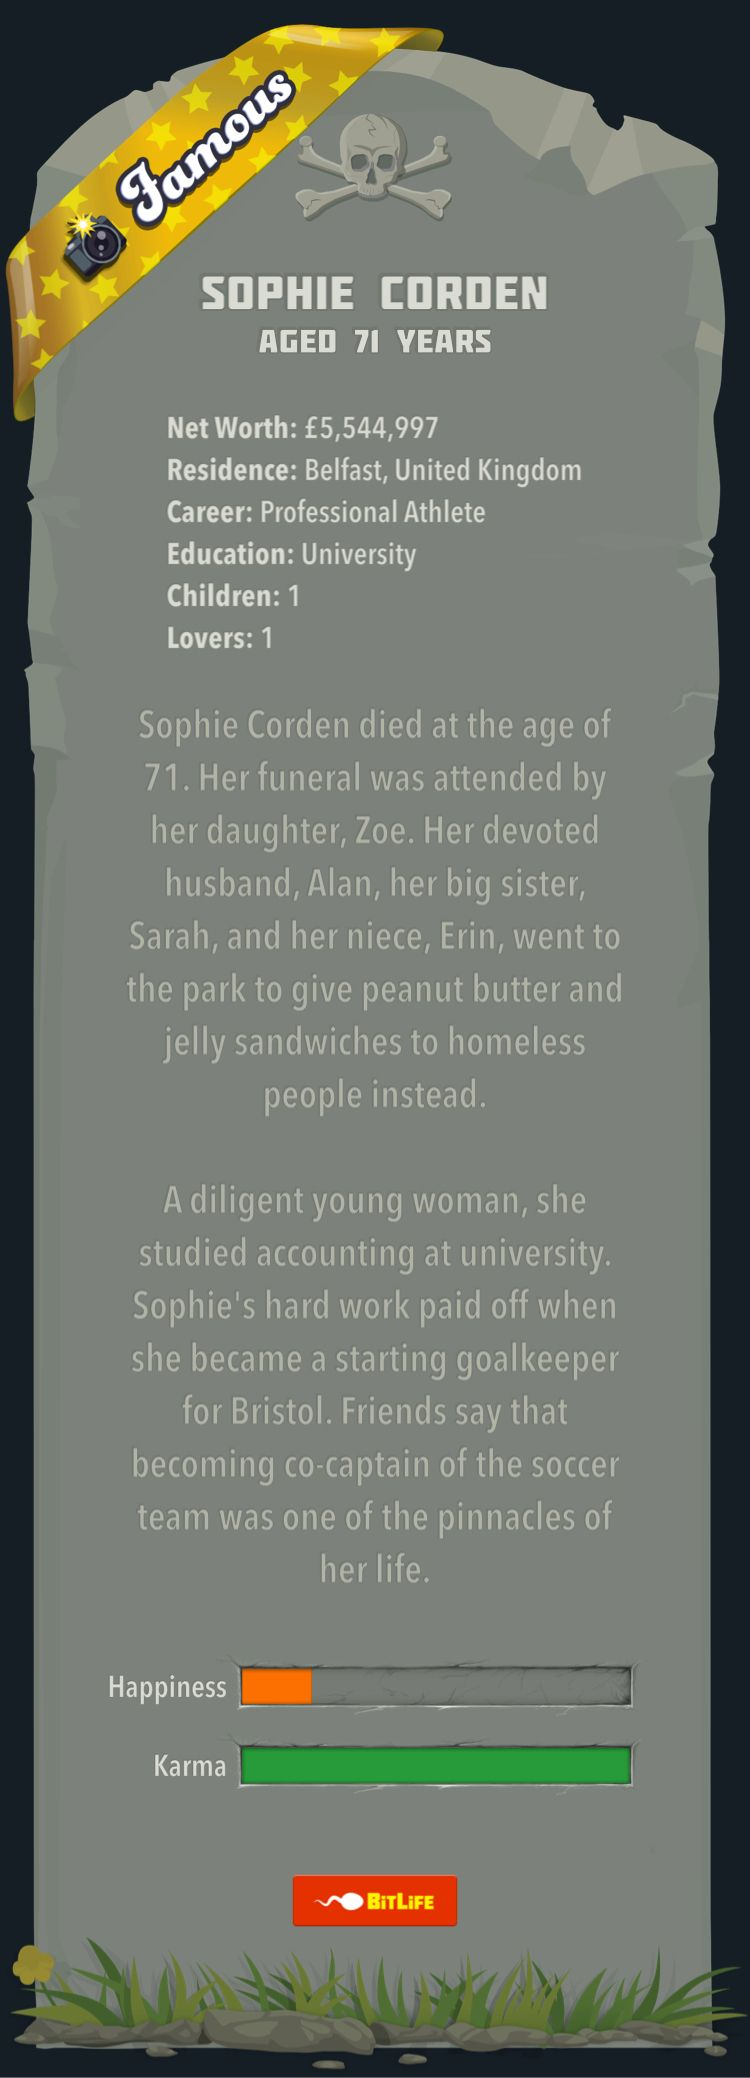 I Just Died In Bitlife At Age 71 While Playing As Sophie Corden I Am Addicted To This Life Simulator Game Www Bitlife Kids School Nursing Education Education